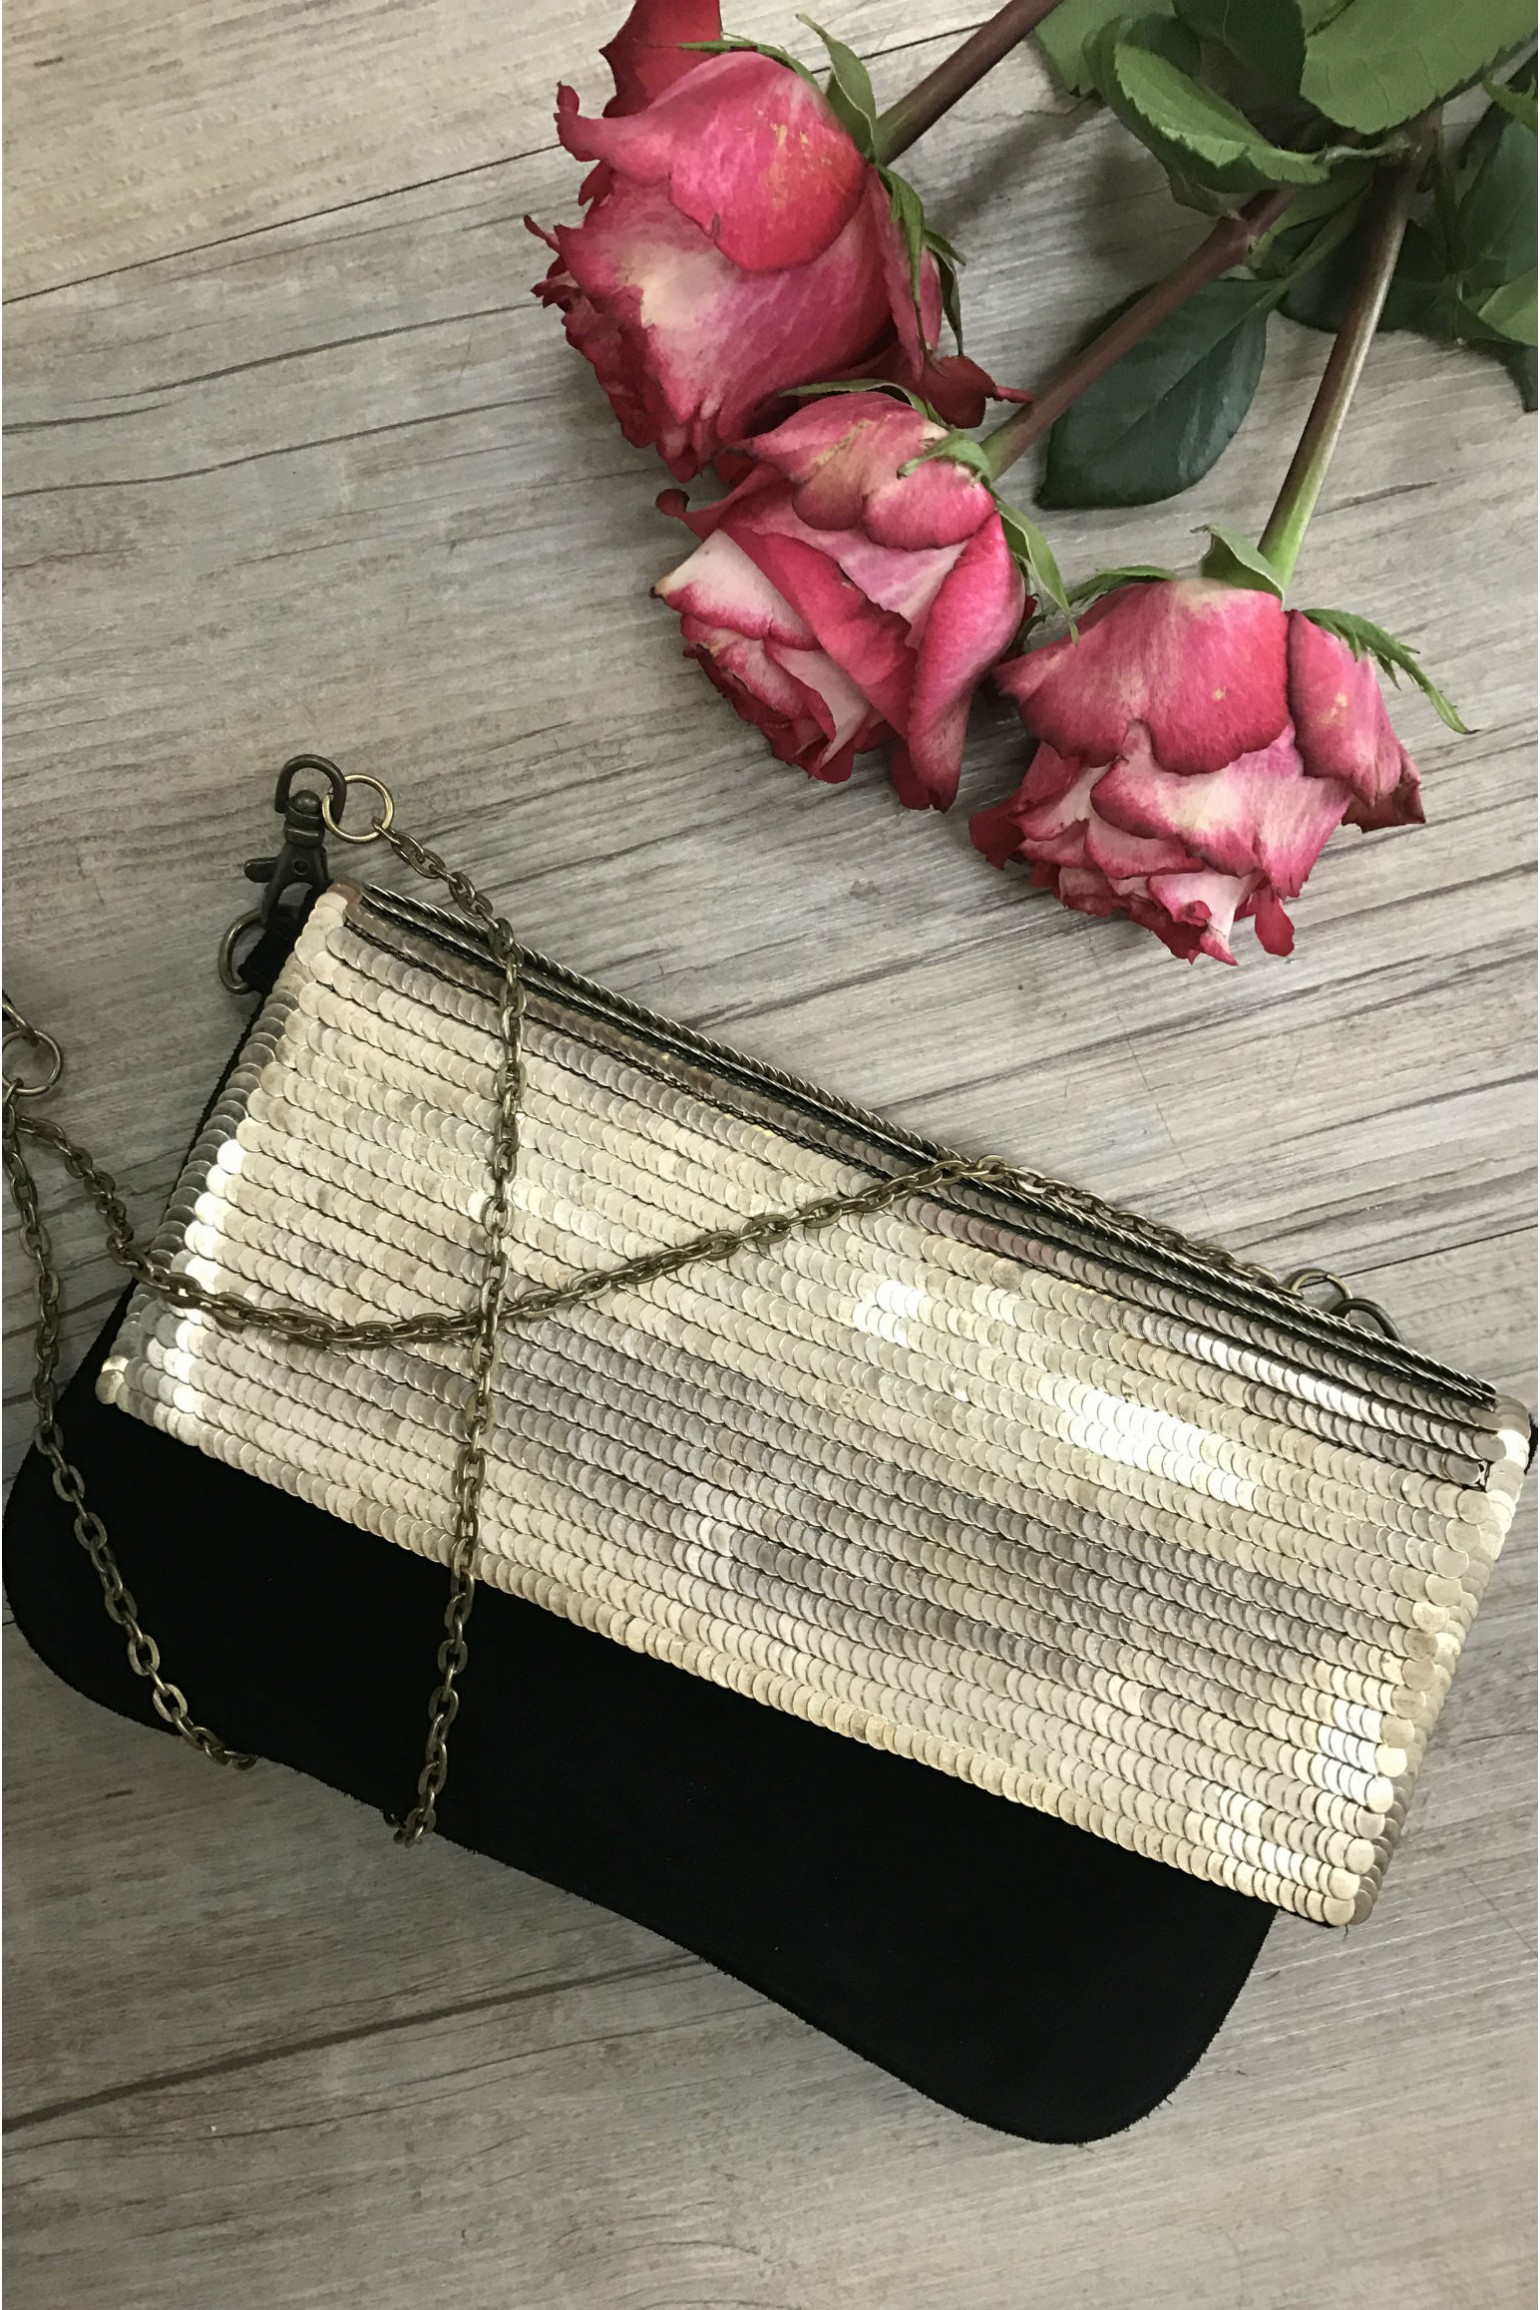 Cloth and Co Cleopatra Clutch